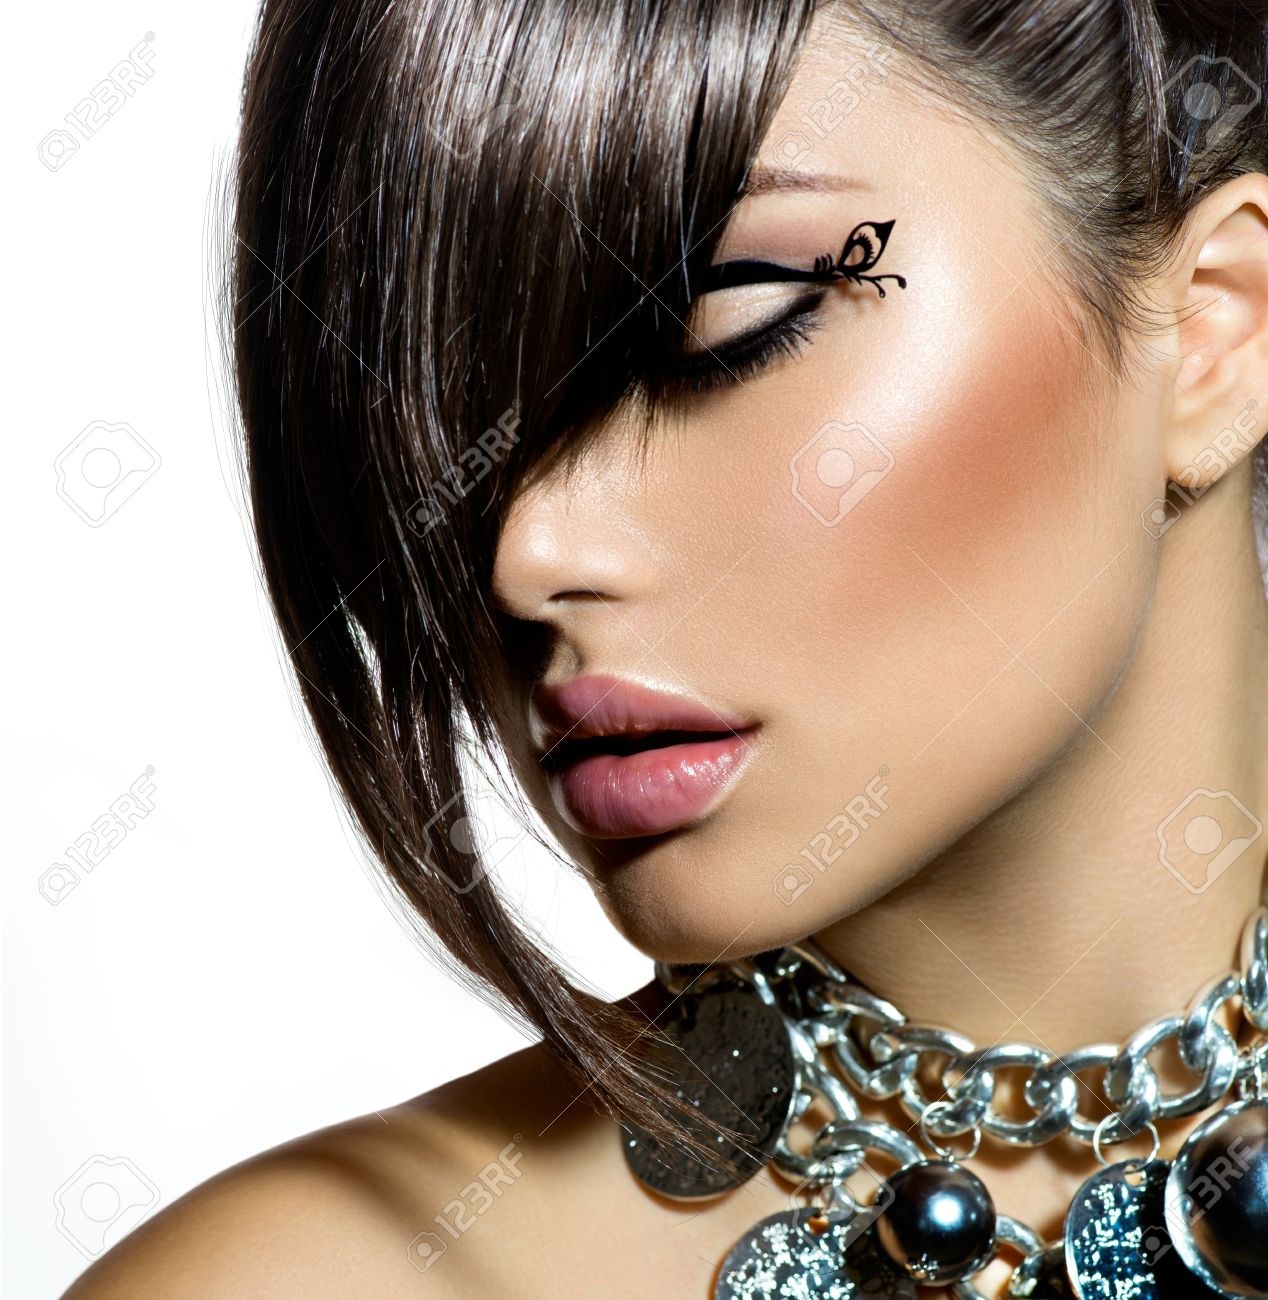 Fashion Glamour Beauty Girl With Stylish Hairstyle And Makeup Stock